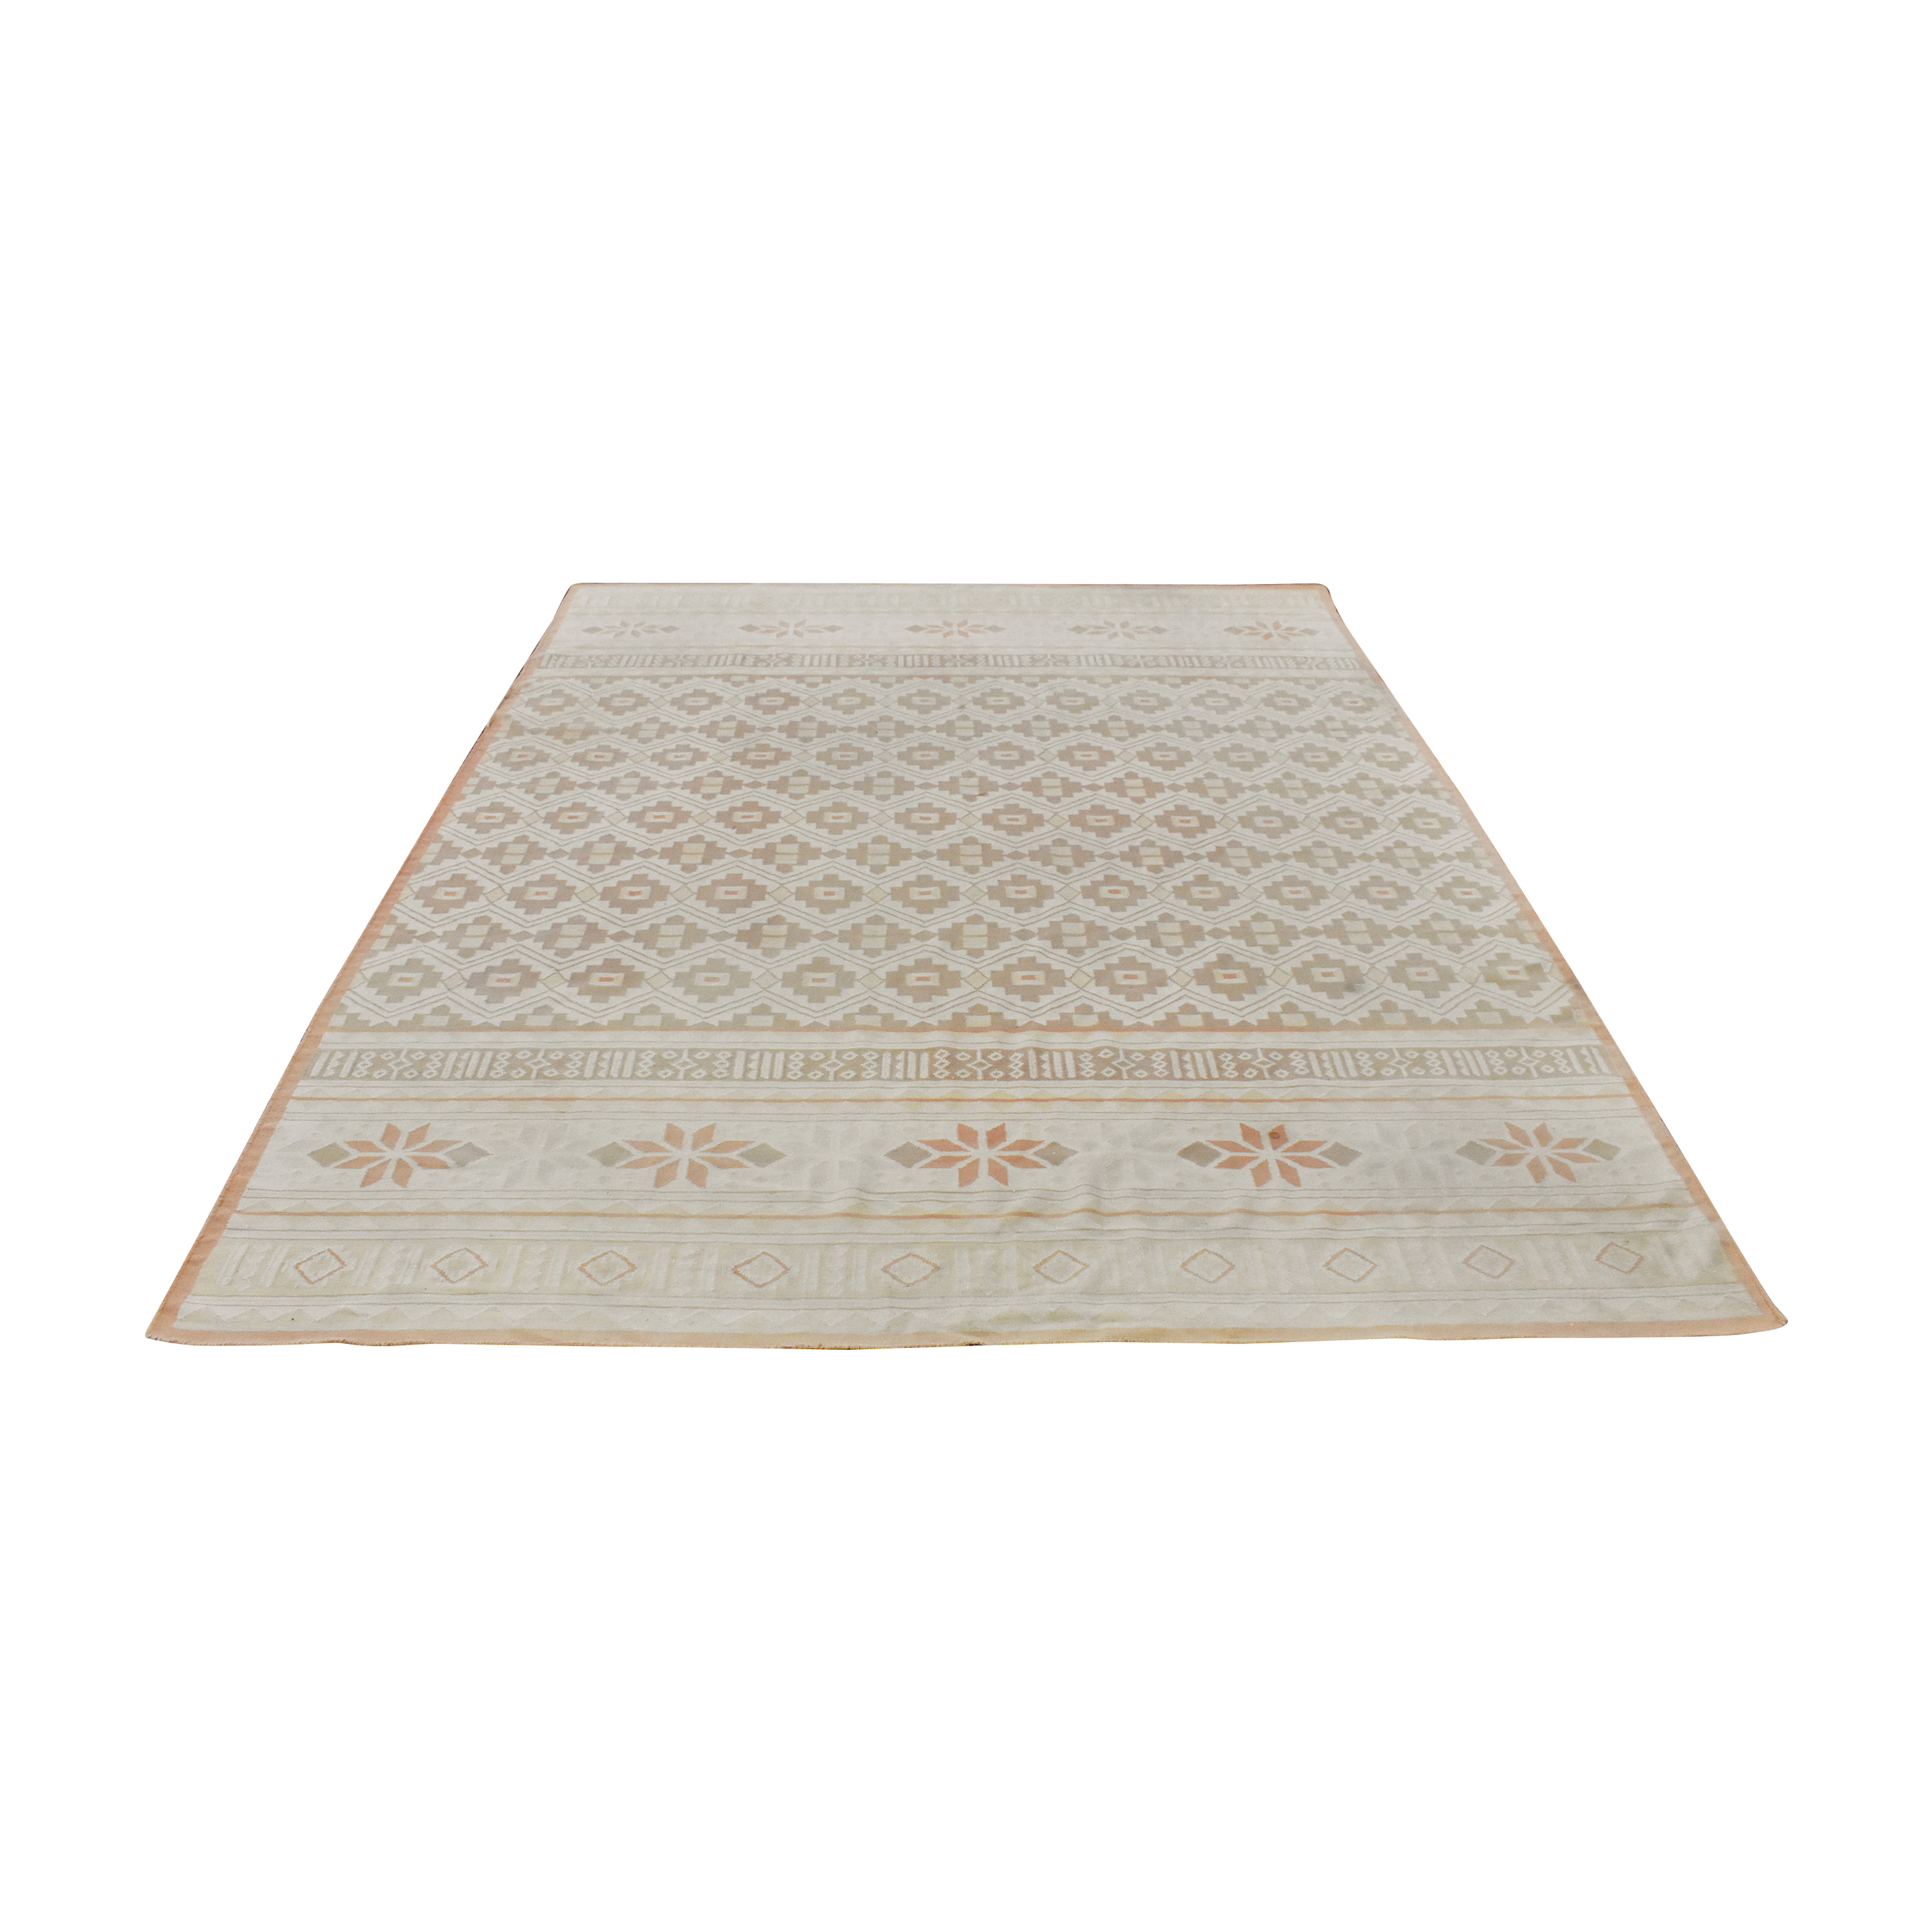 buy  Patterned Area Rug online